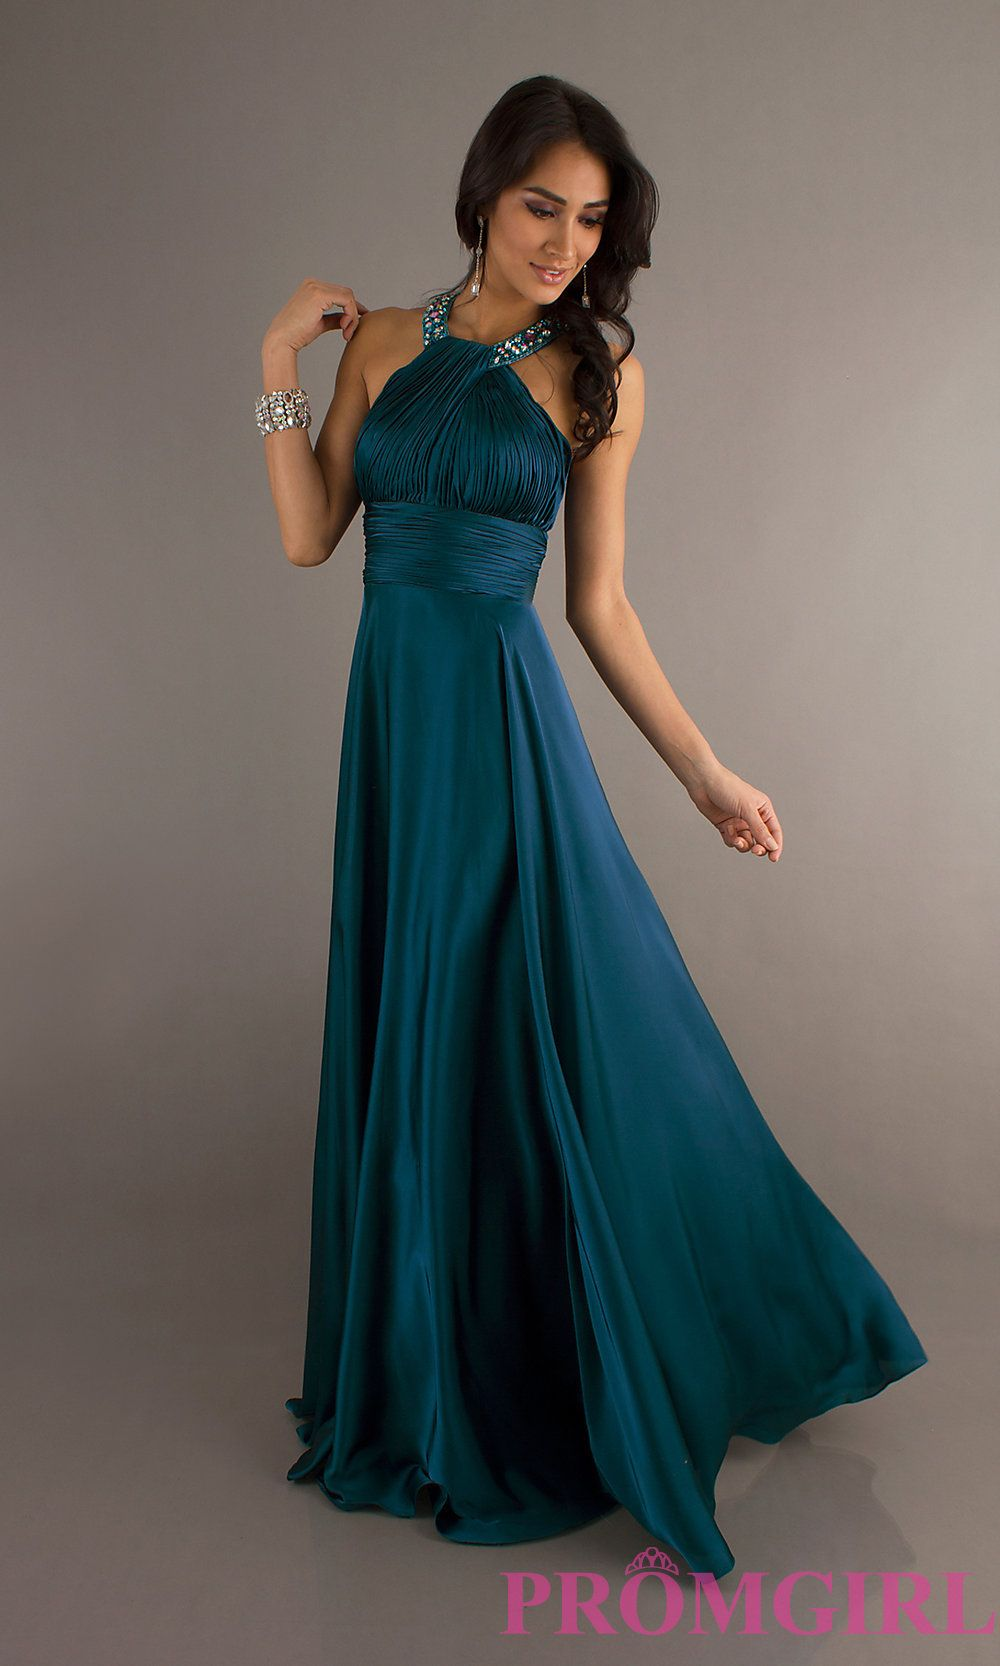 High neck long halter dress halter gowns quite a few color